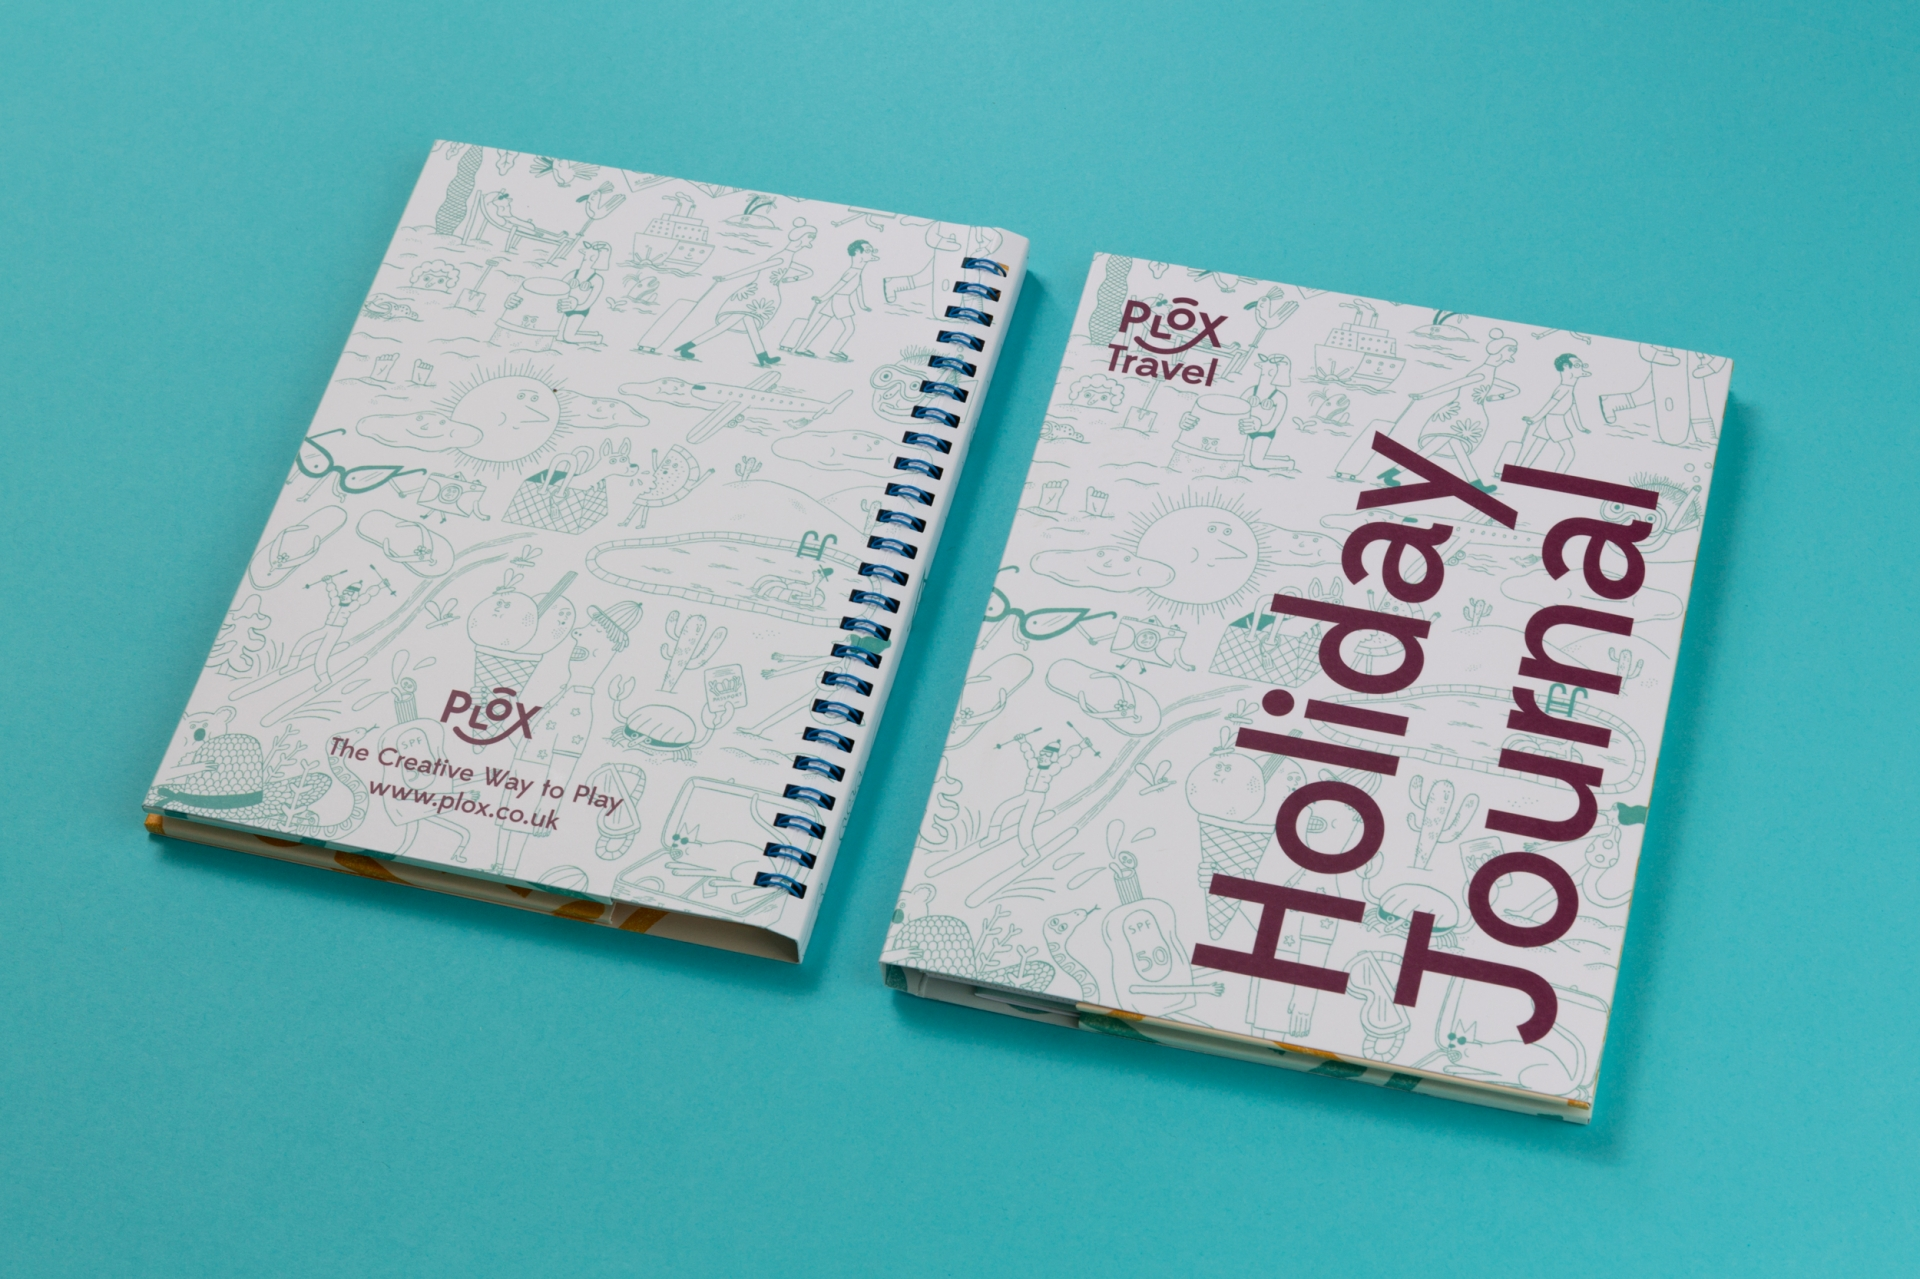 Patrick Fry Studio Plox Travel Journal